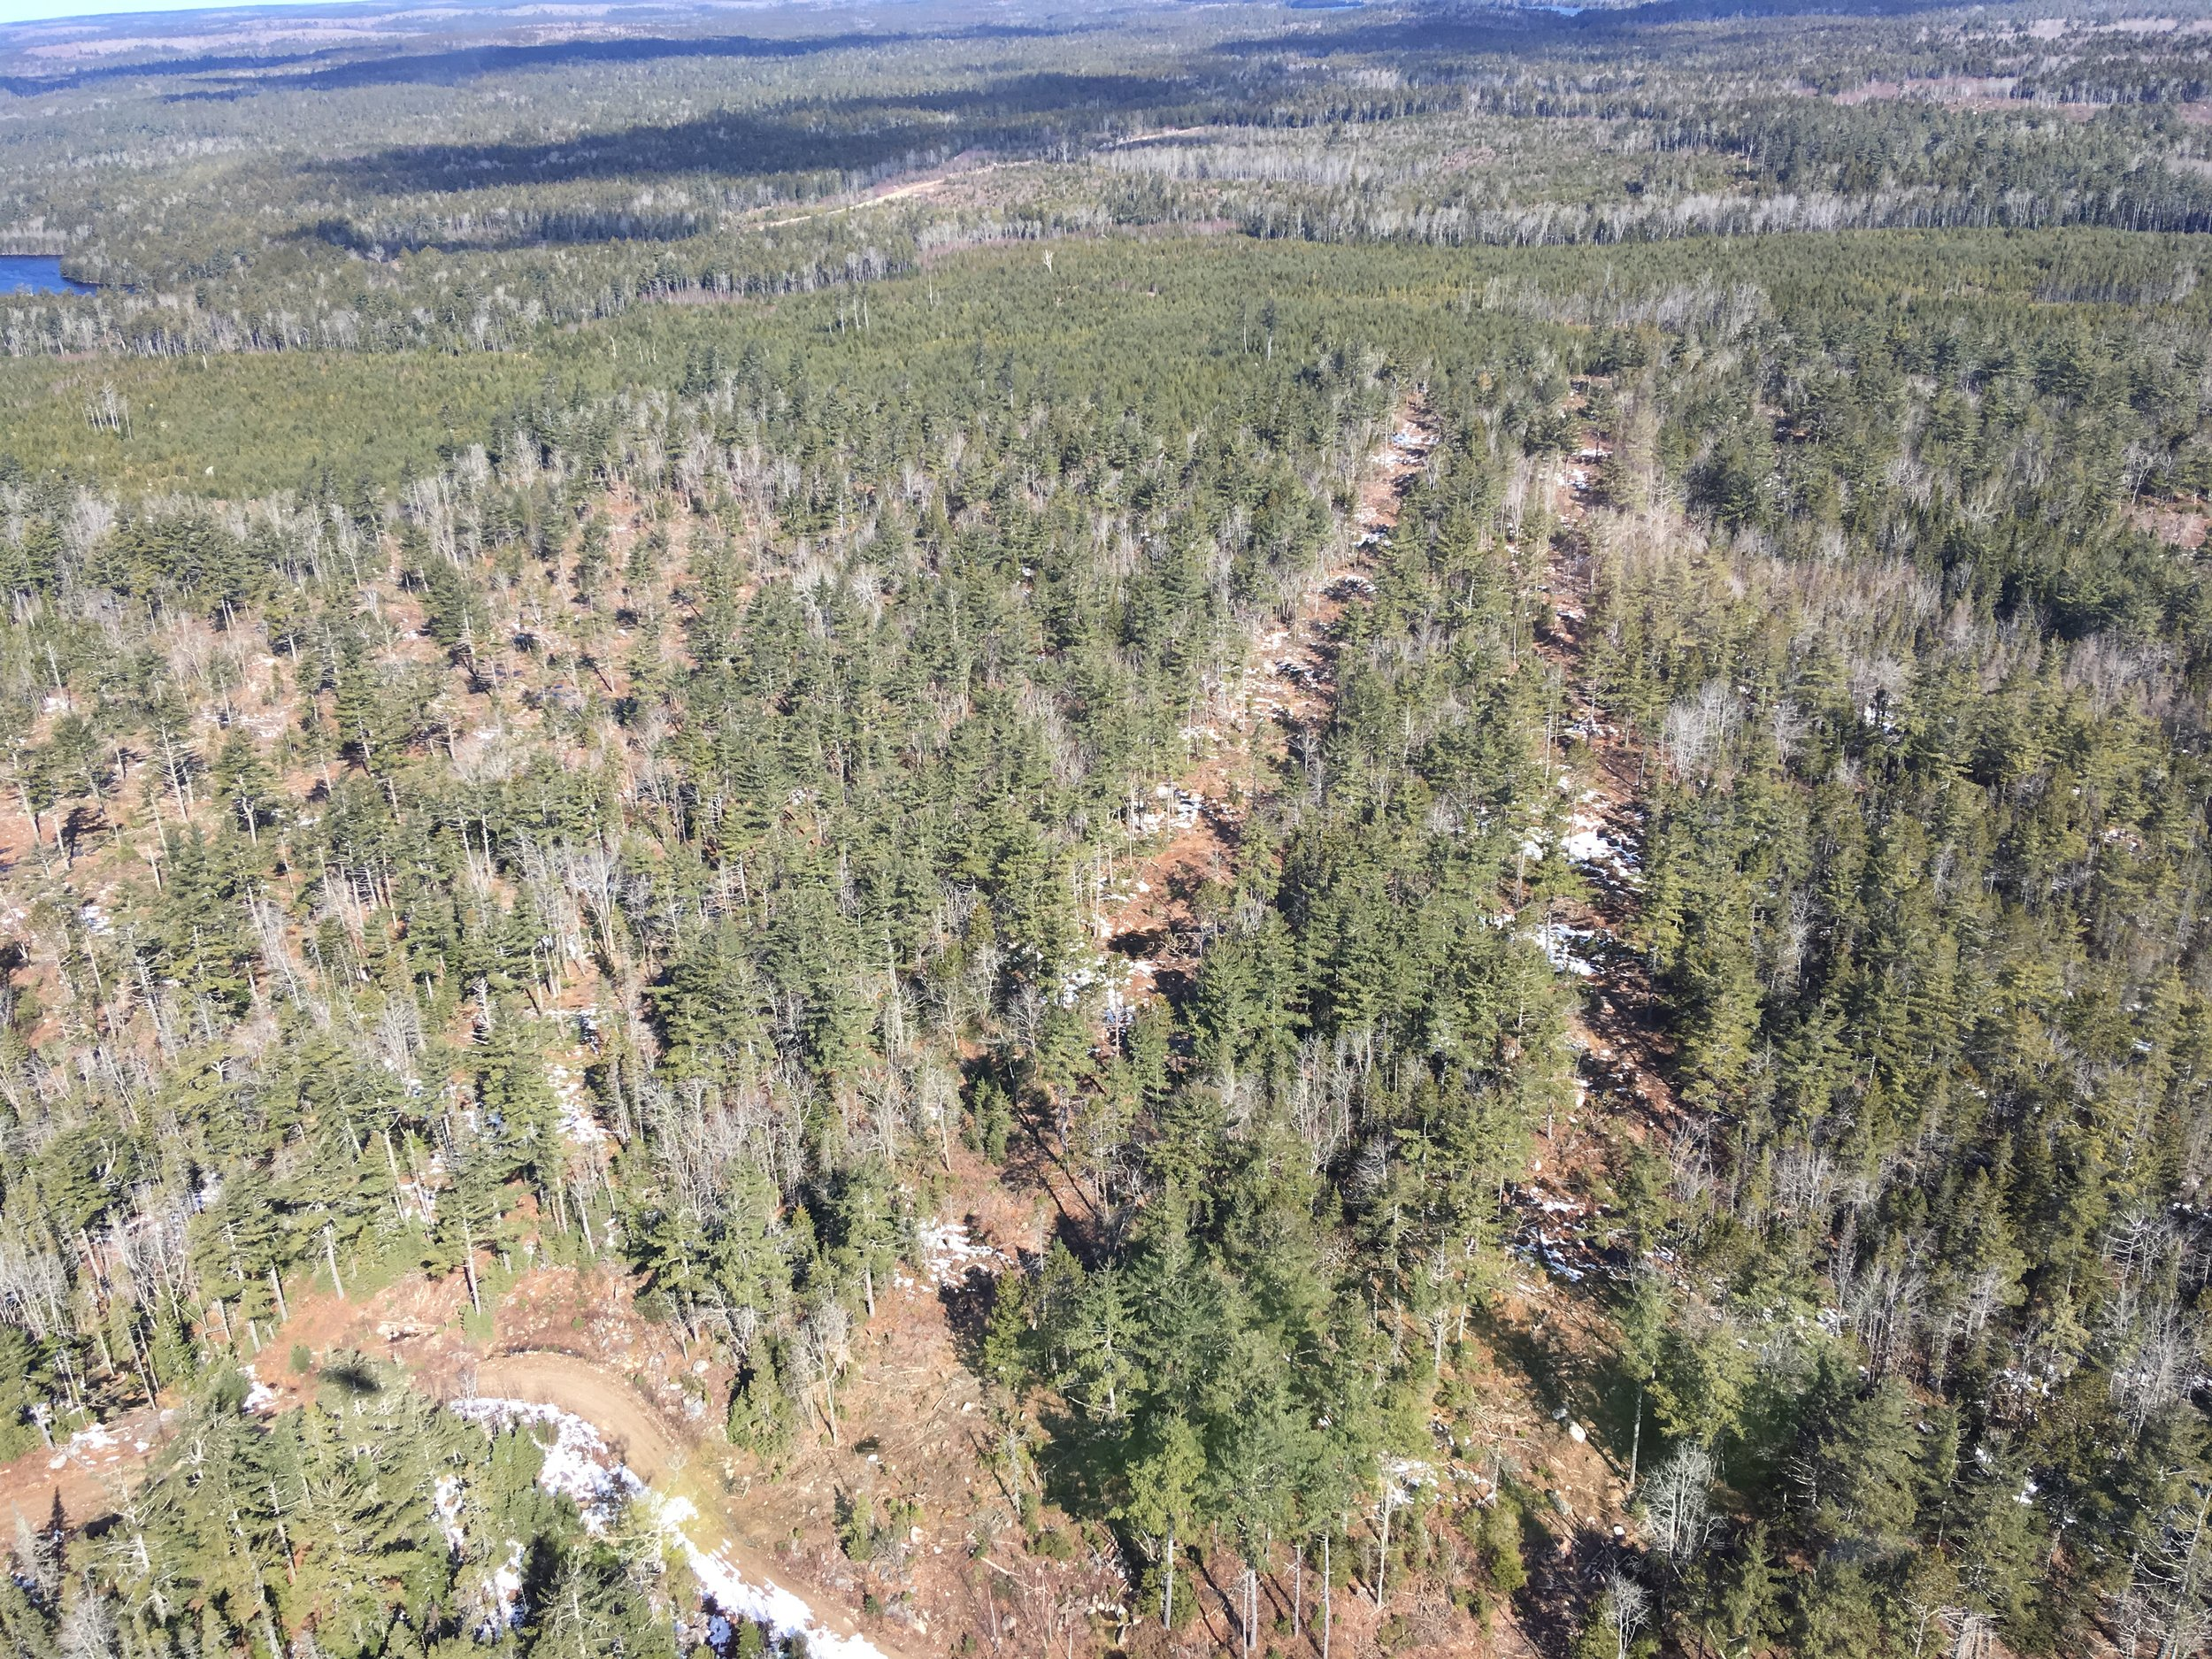 Aerial view of the MCFC Spruce-Pine research trial